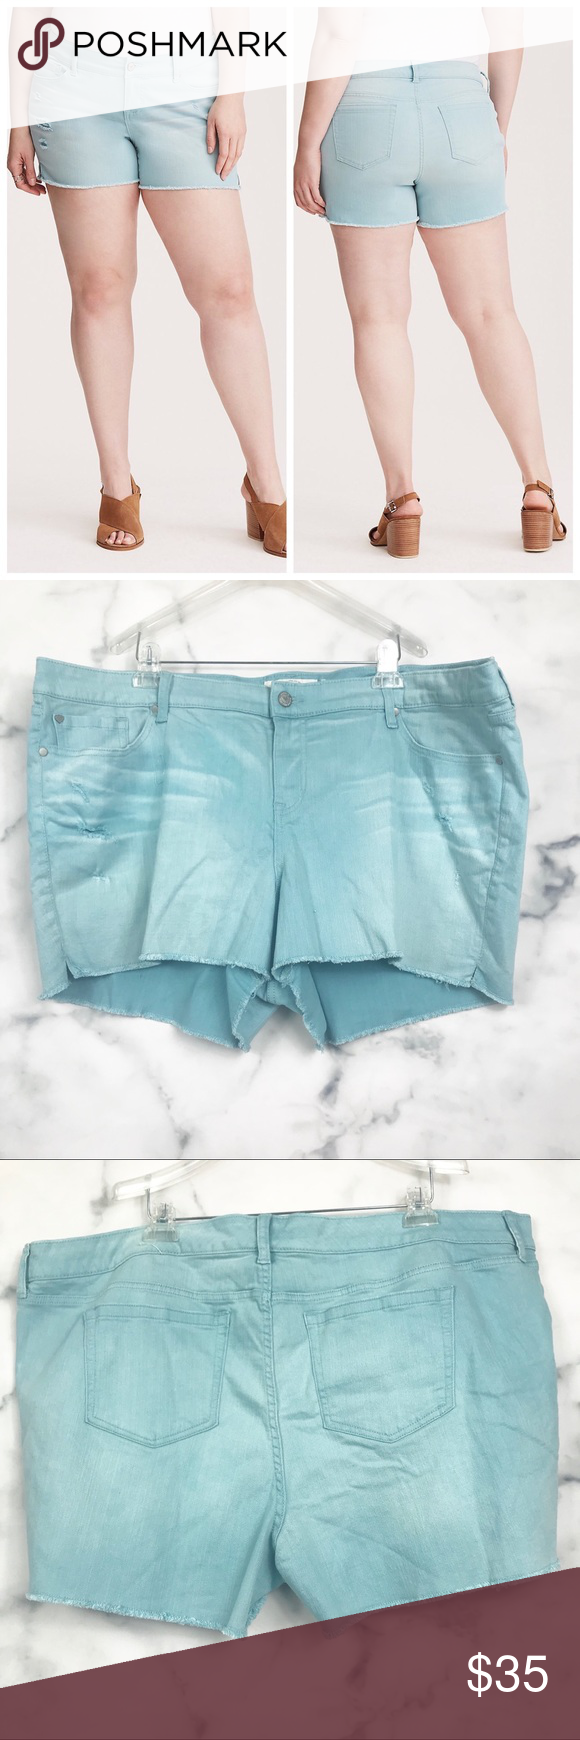 "Torrid Distressed Light Blue Denim Shorts Torrid Distressed Light Blue Denim Shorts 26 -Light blue wash with distressing  -Zipper with button fly -Raw frayed hem -Condition: Preowned. No flaws. No signs of wear.  Measurements lying flat: -Waist: 24"" -Rise: 12.5"" -Inseam: 3"" torrid Shorts #lightblueshorts"